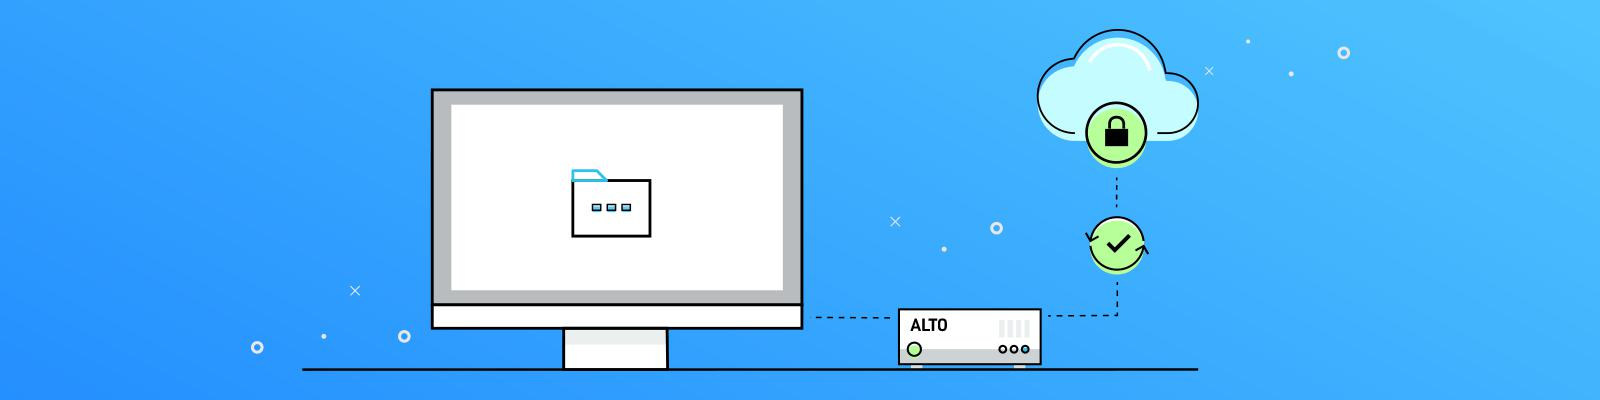 ALTO: Enterprise Data Protection for Small Businesses